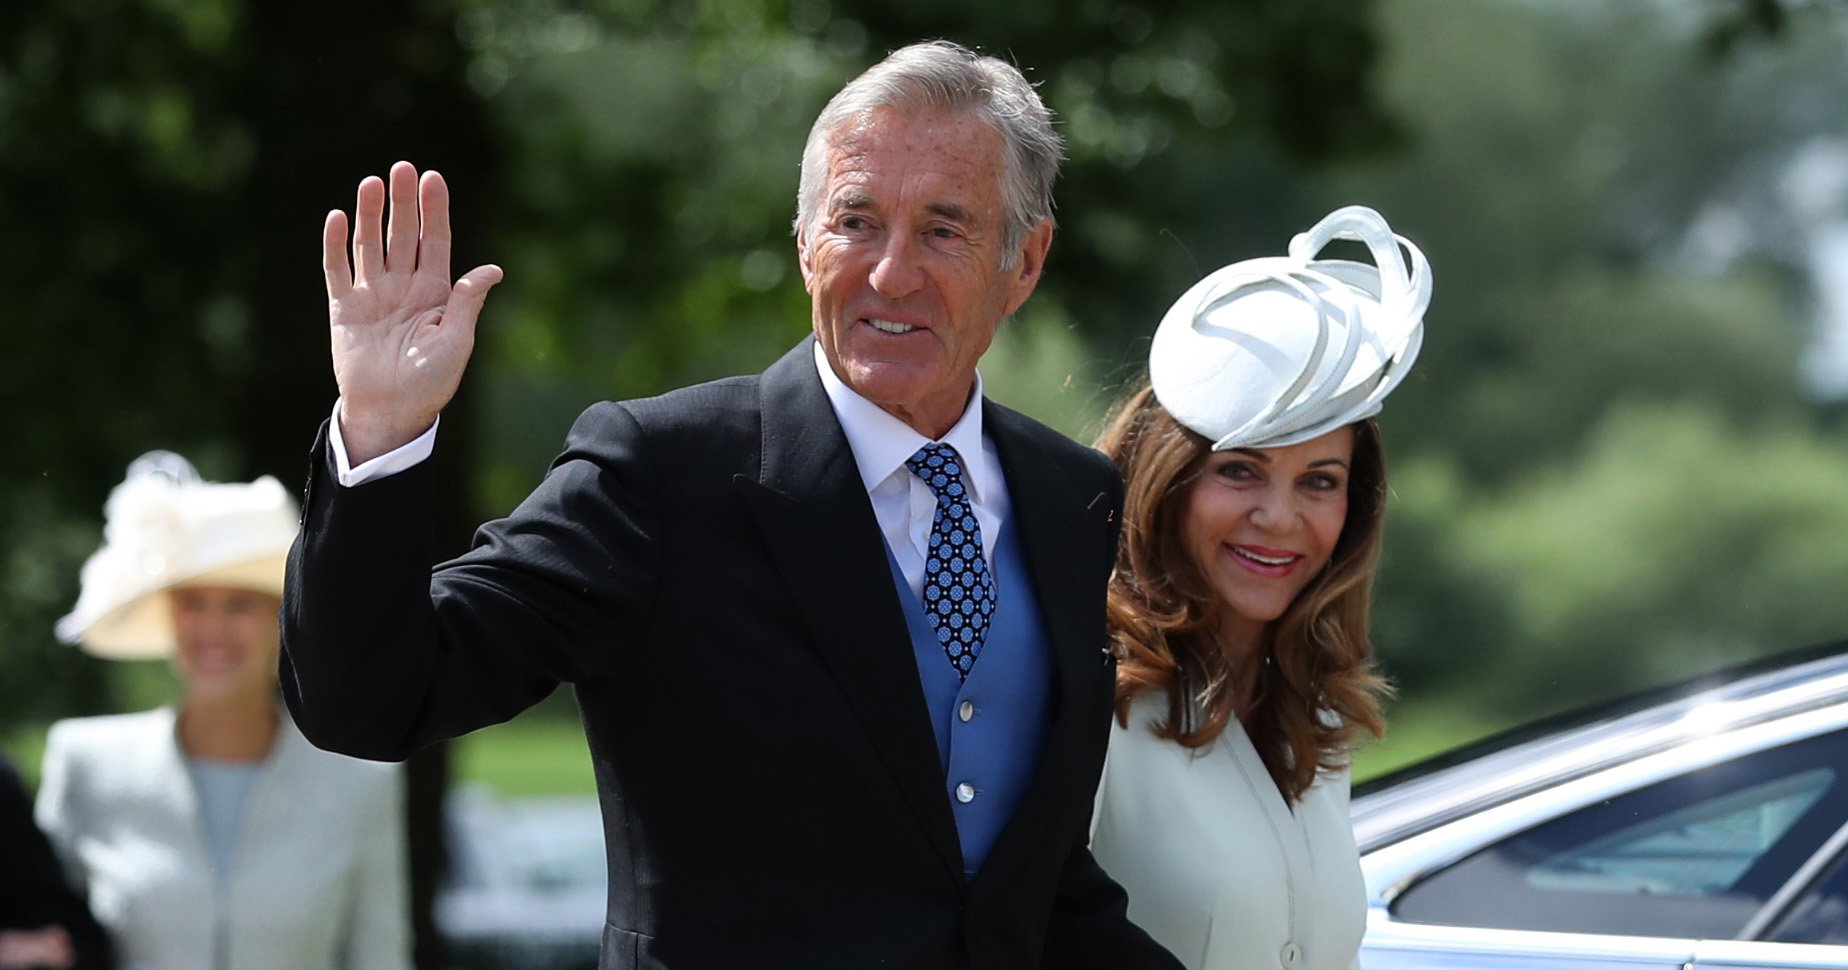 Man arrested for threatening Pippa Middleton father-in-law 'rape victim'